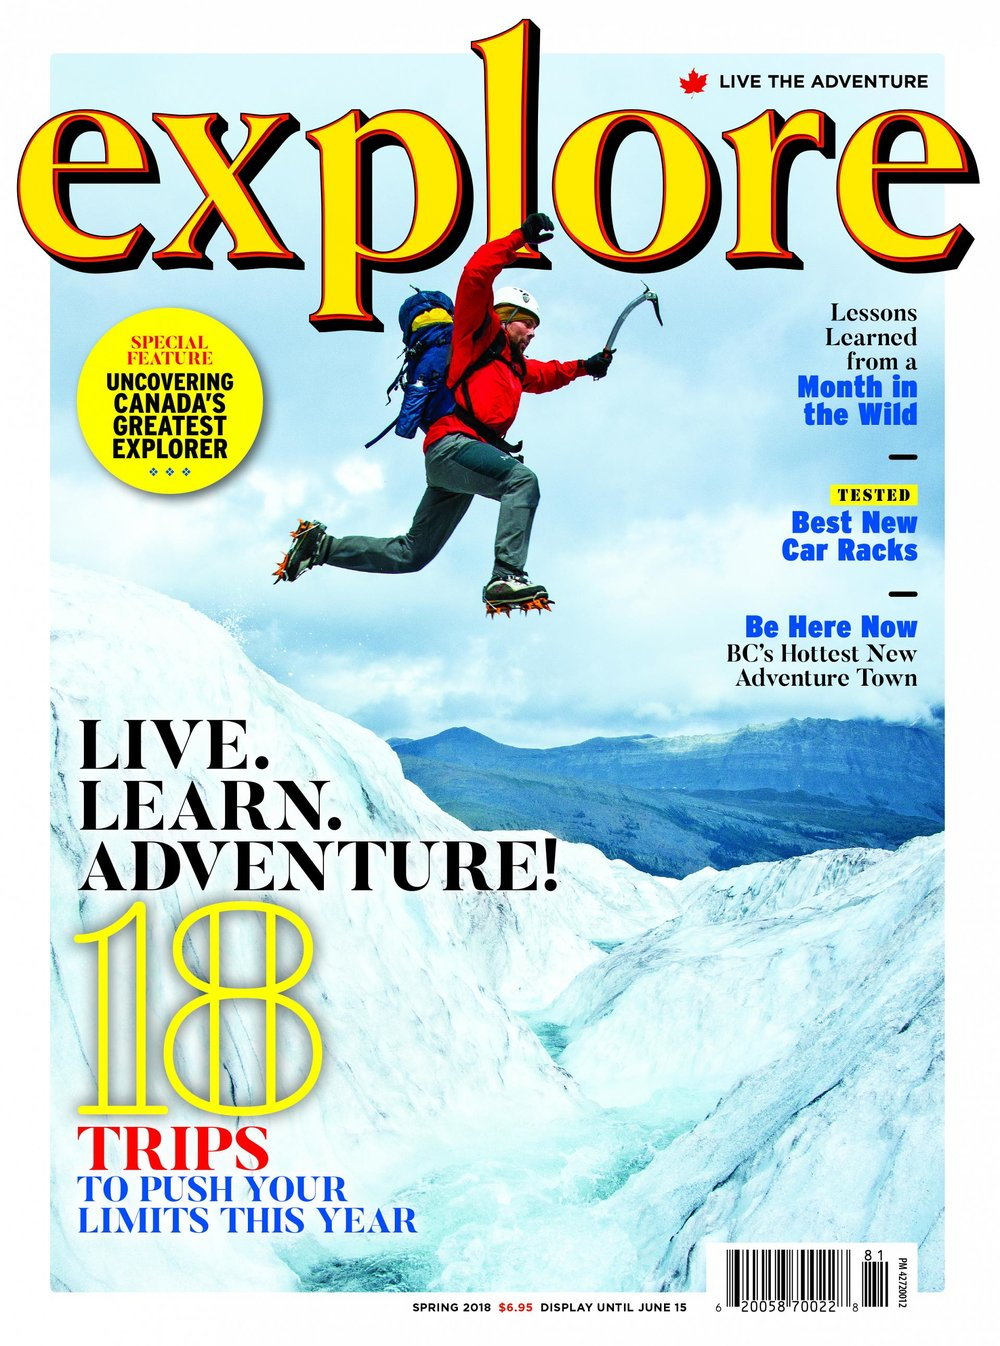 EXPLORE Magazine - $12 annually - Canada's number one-selling outdoor adventure magazine. Released quarterly, its focus is self-propelled outdoor adventure, primarily in Canada. www.explore-mag.comUse the button below to join or renew your Snowshoe Canada membership and claim this amazing offer.